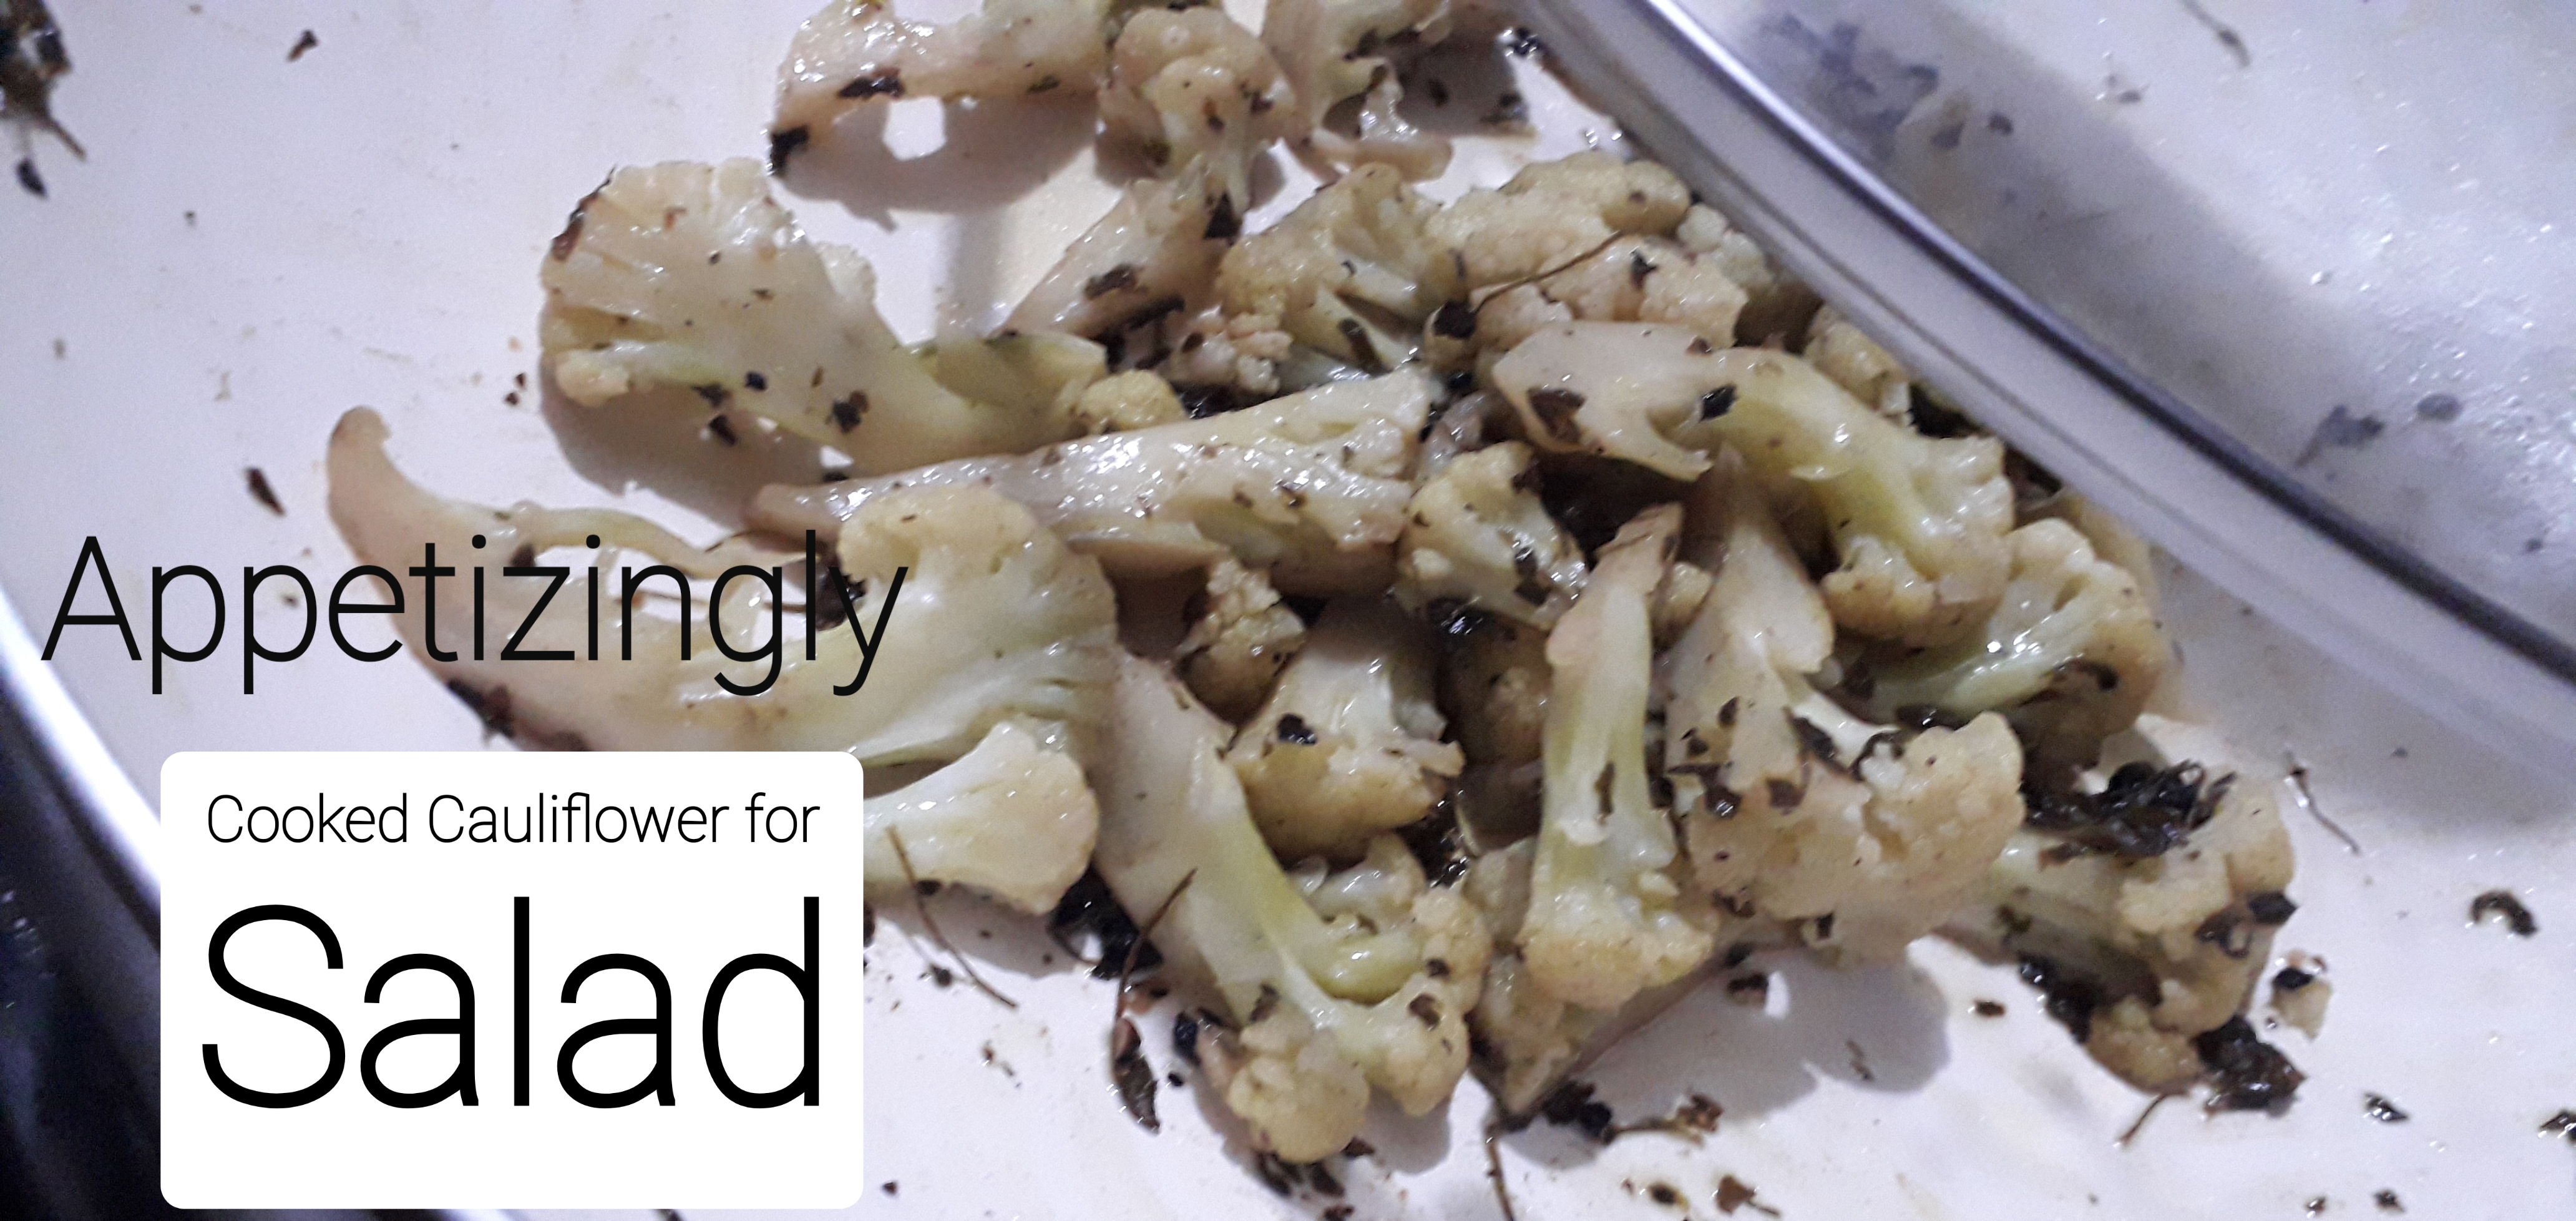 Cooked Cauliflower for Salad